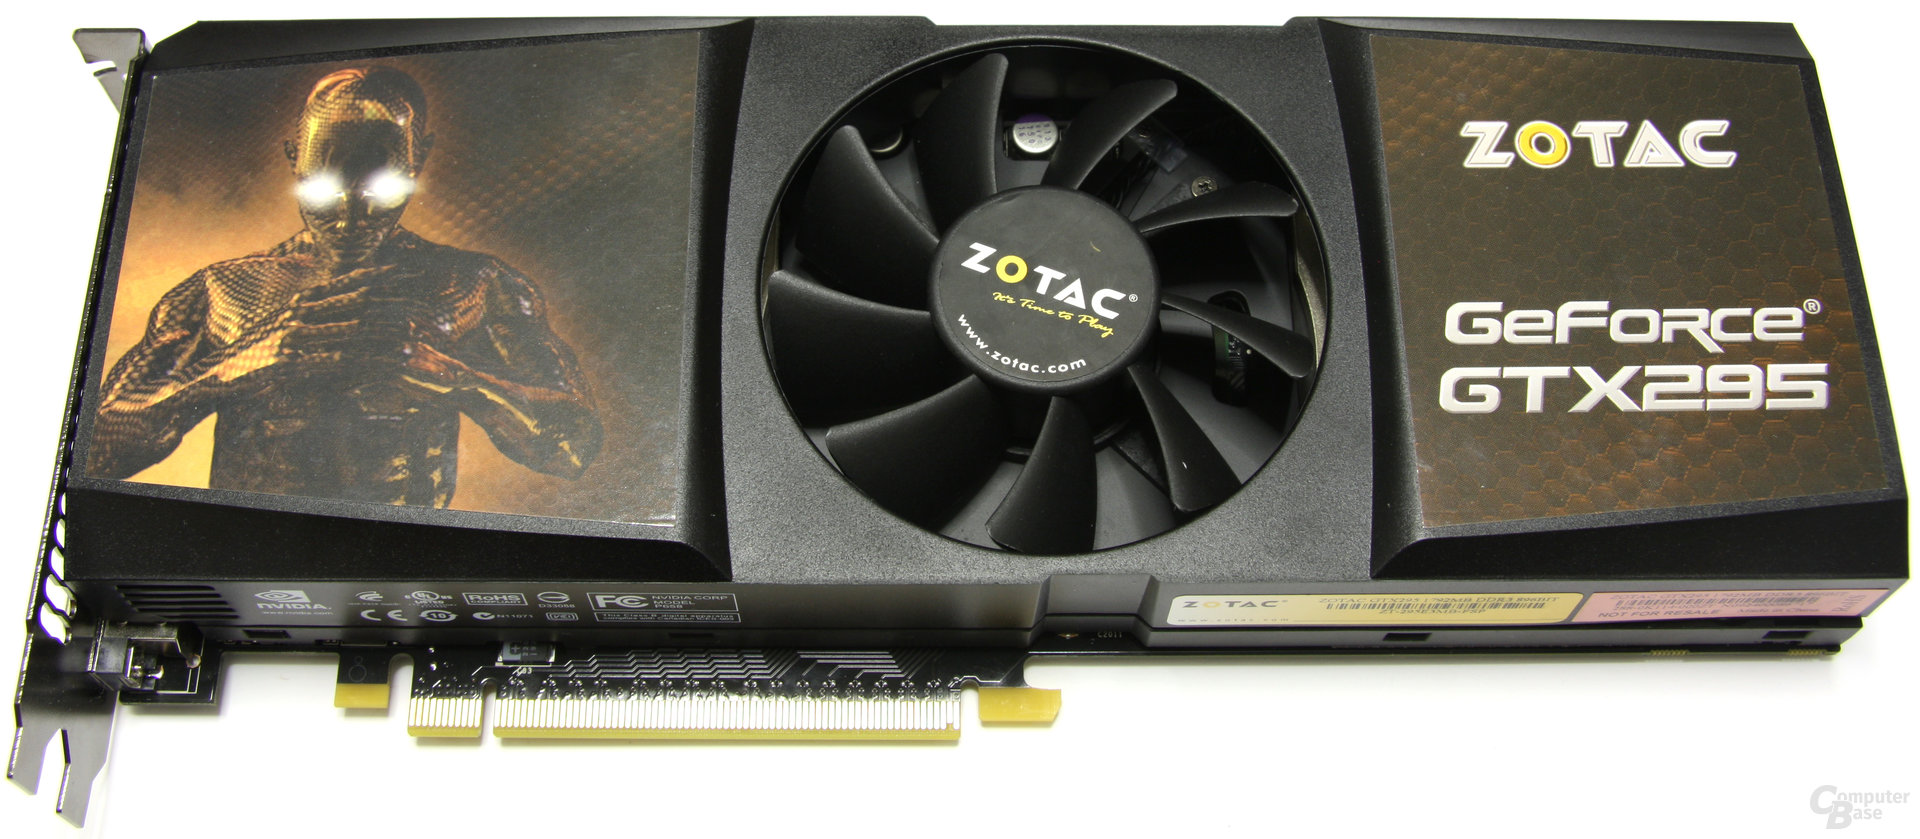 Zotac GeForce GTX 295